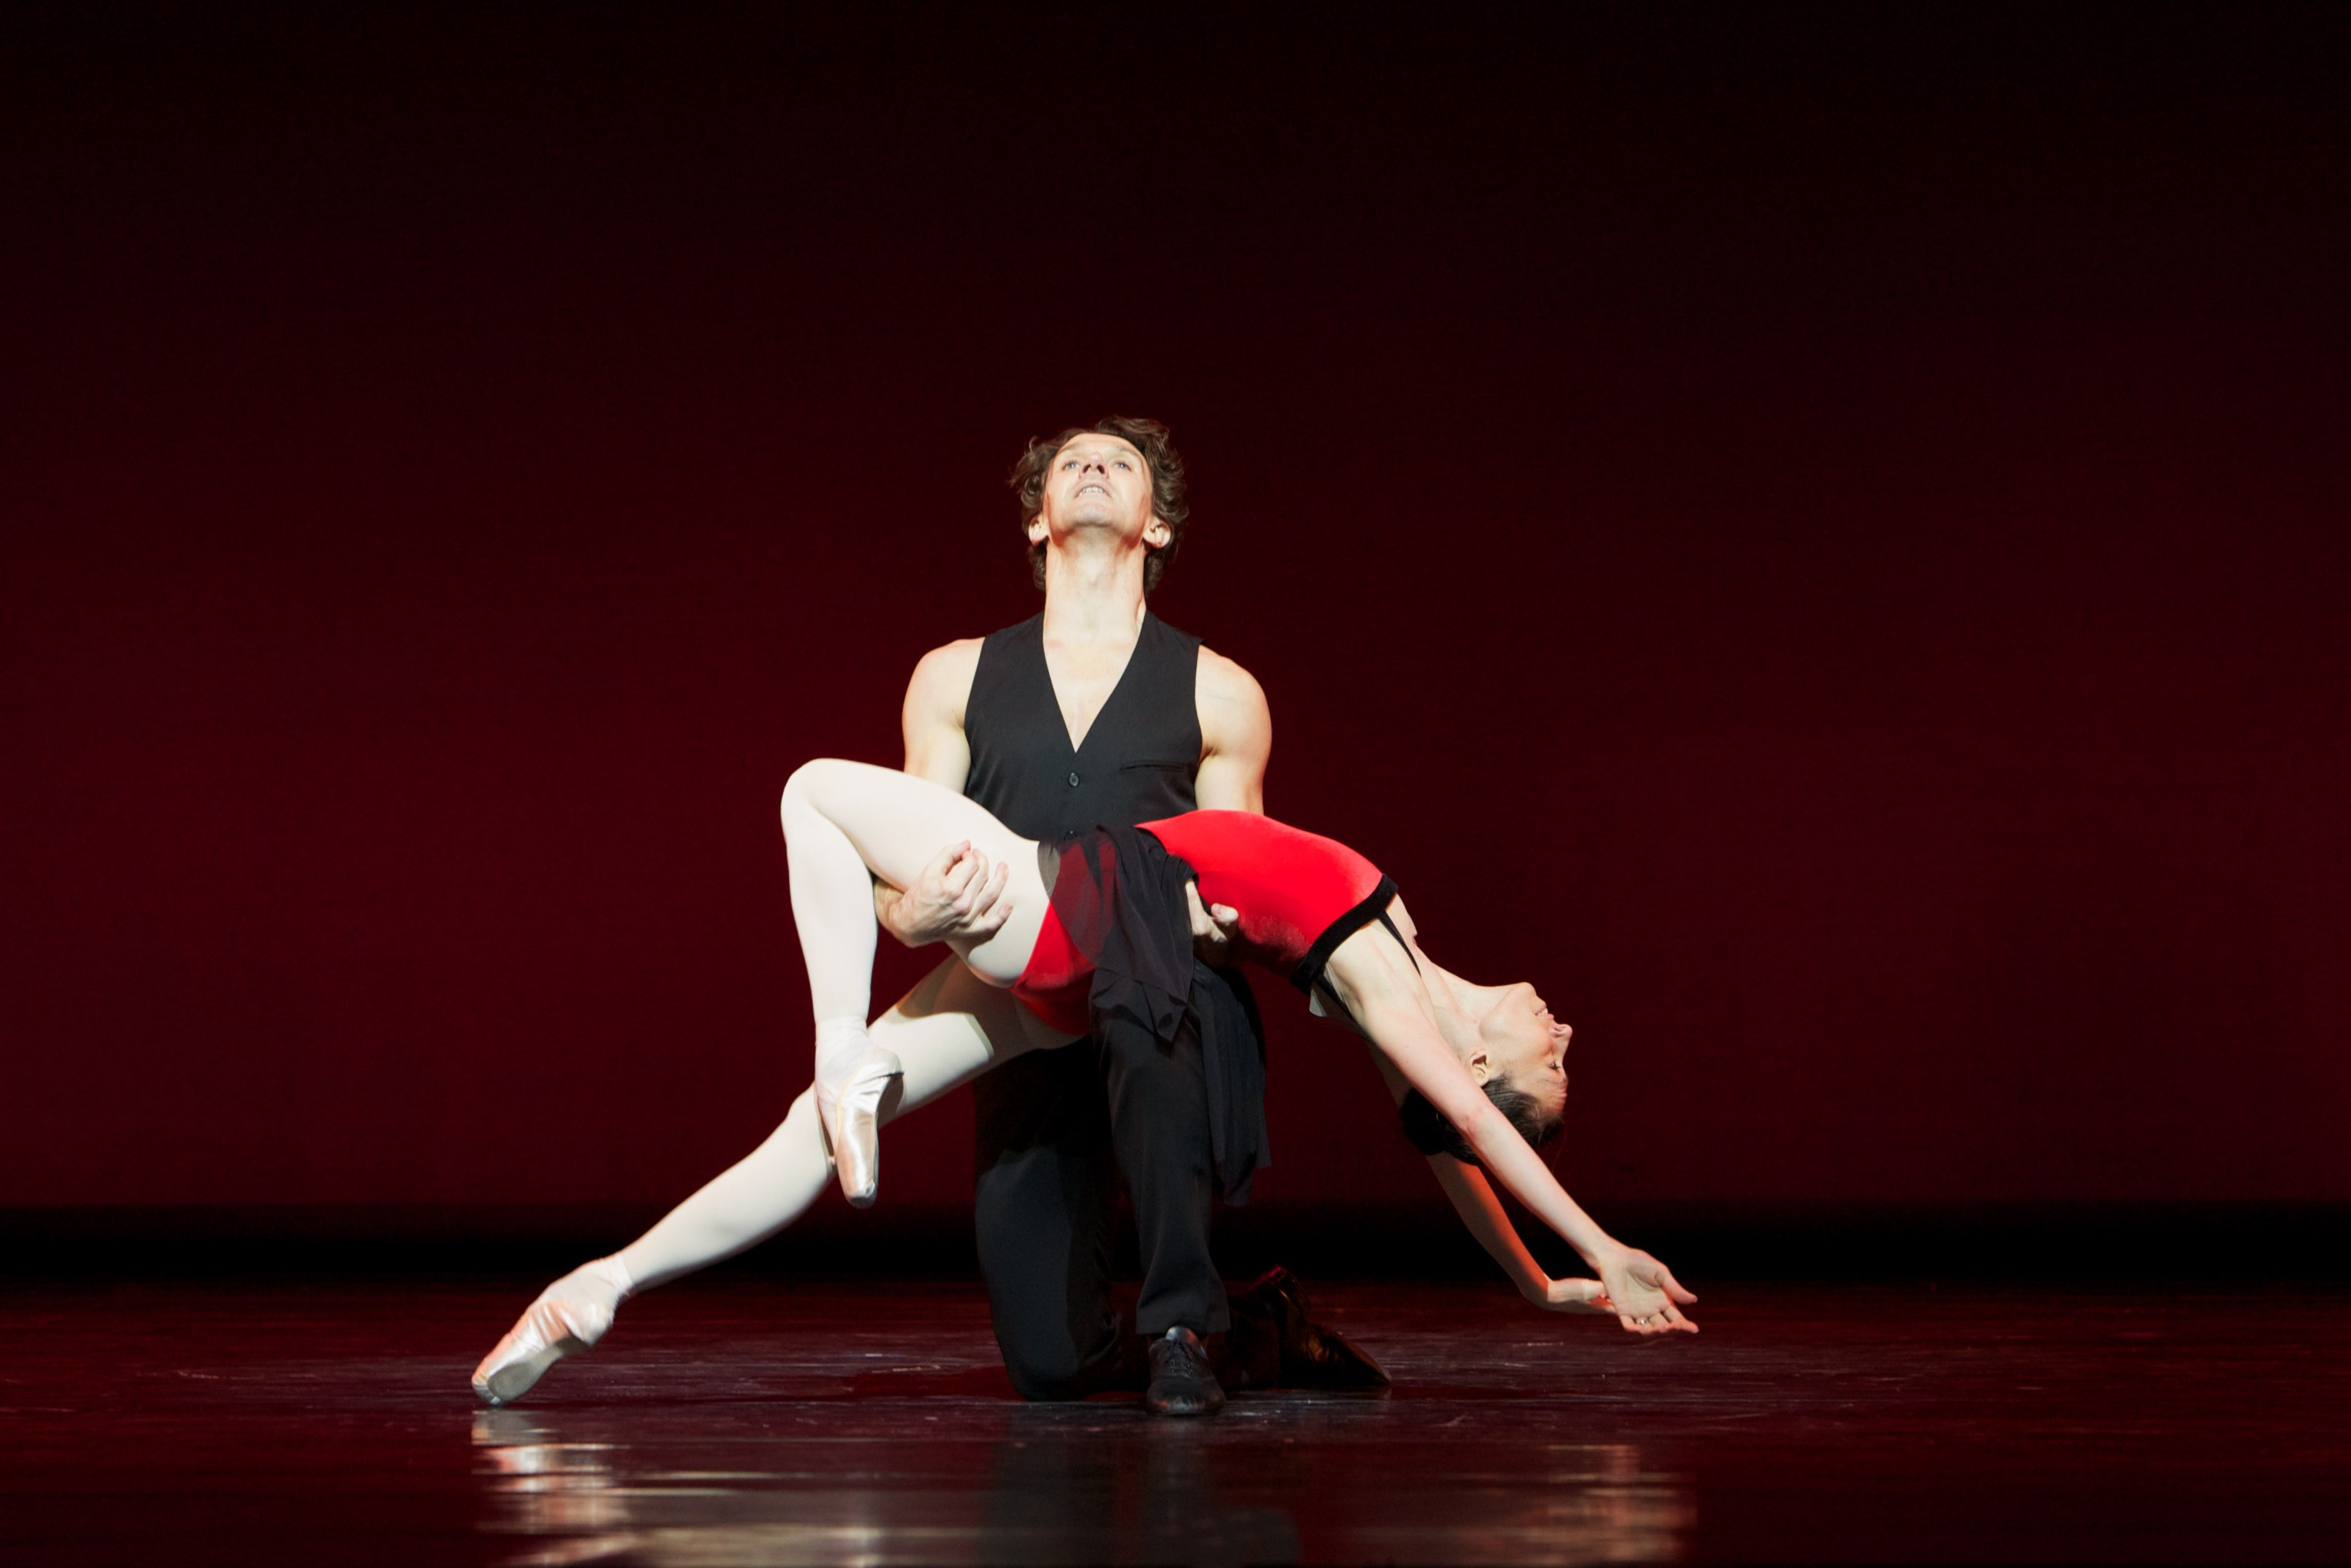 ballet dancers lie on top of one another on stage